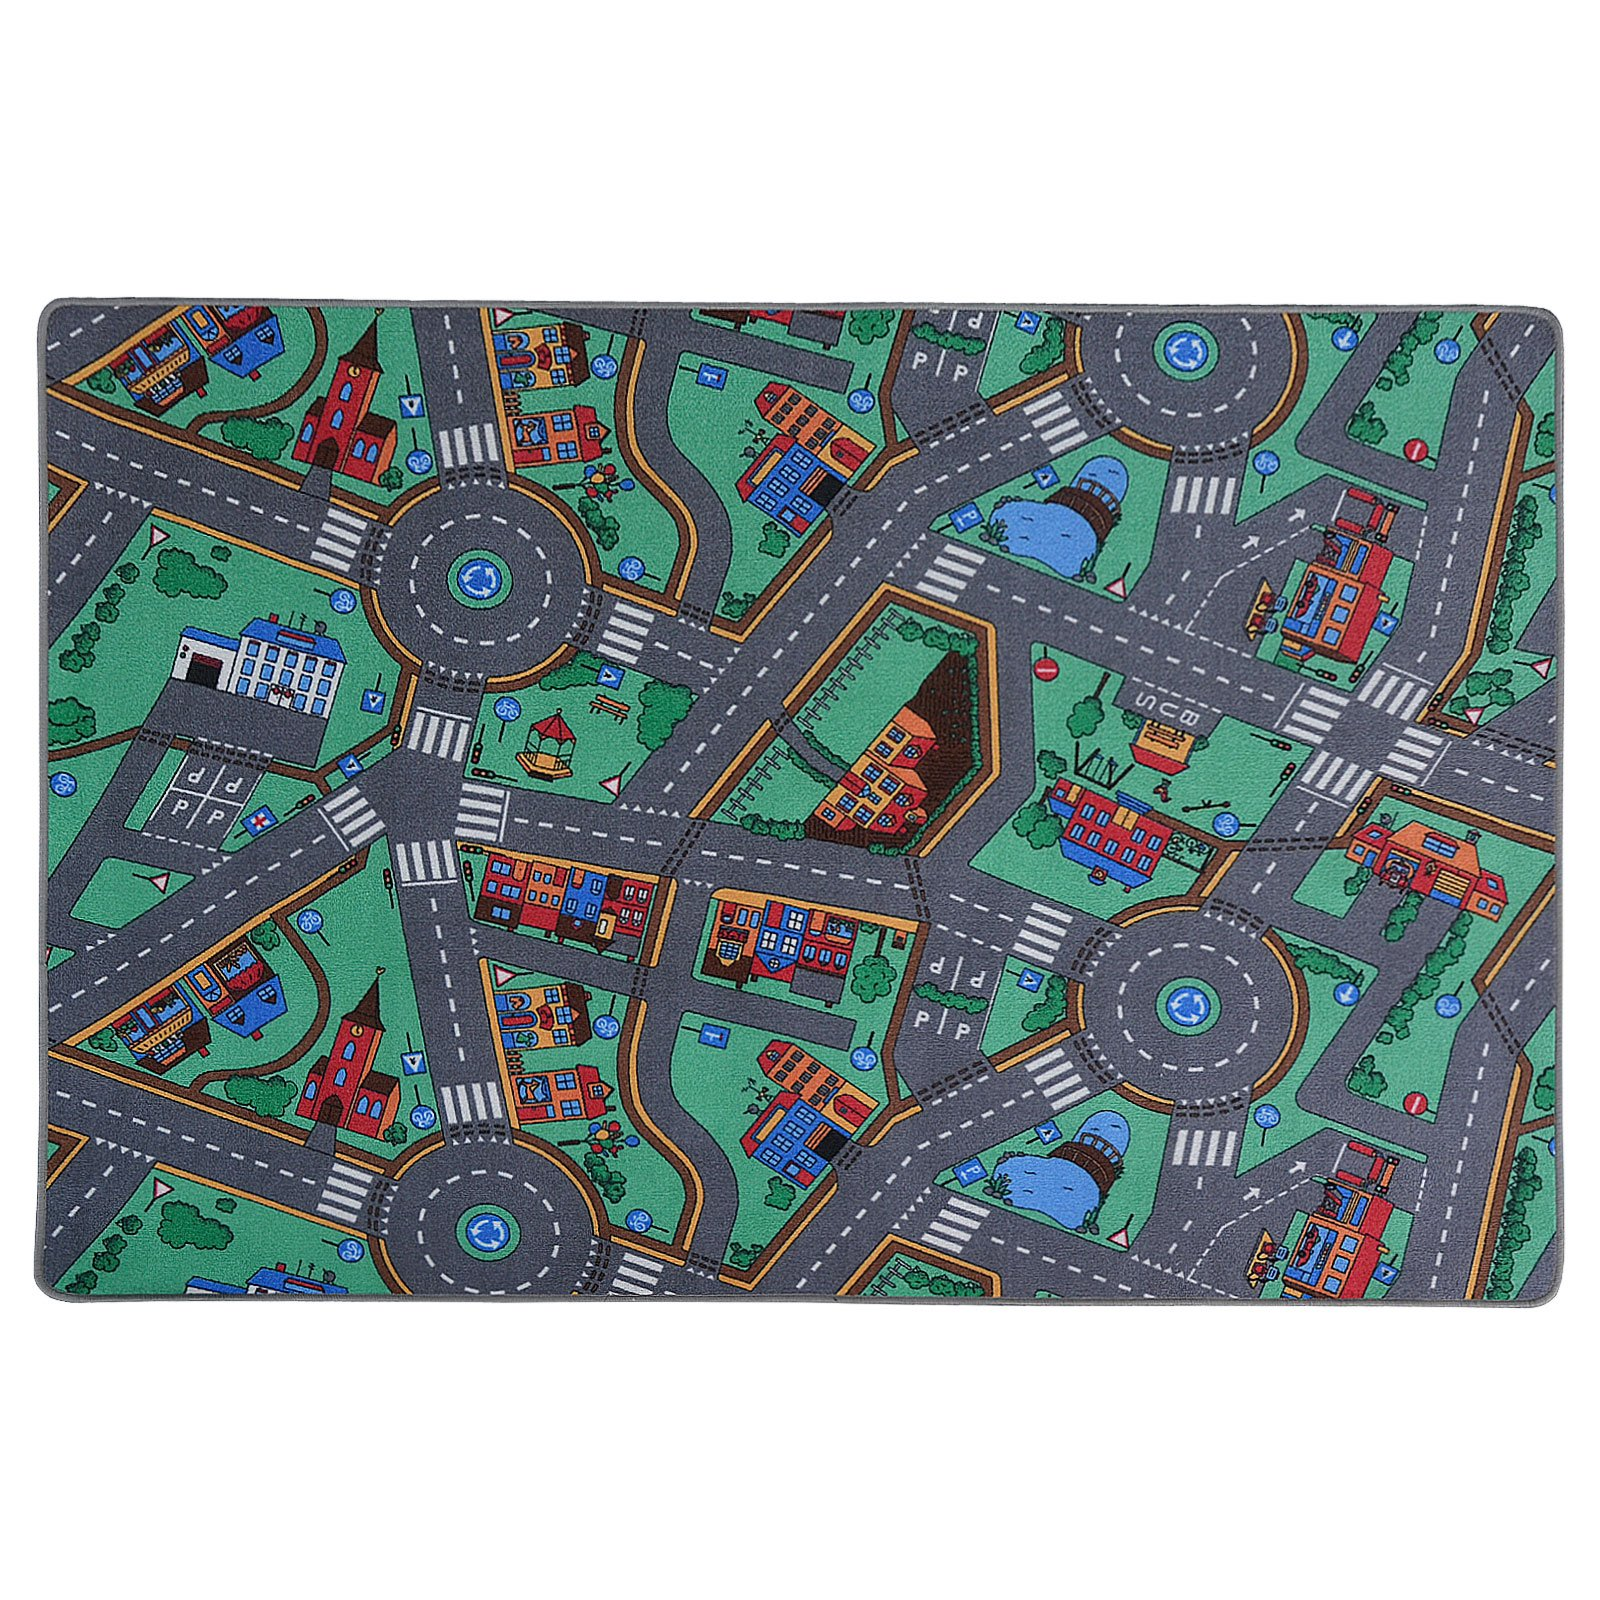 Kids Play Mat | Kids Rug for Playroom, Non Toxic Anti-Slip | Car Rug Play Mat Suitable for Bedrooms & Nursery | My Town - 32'' x 48''